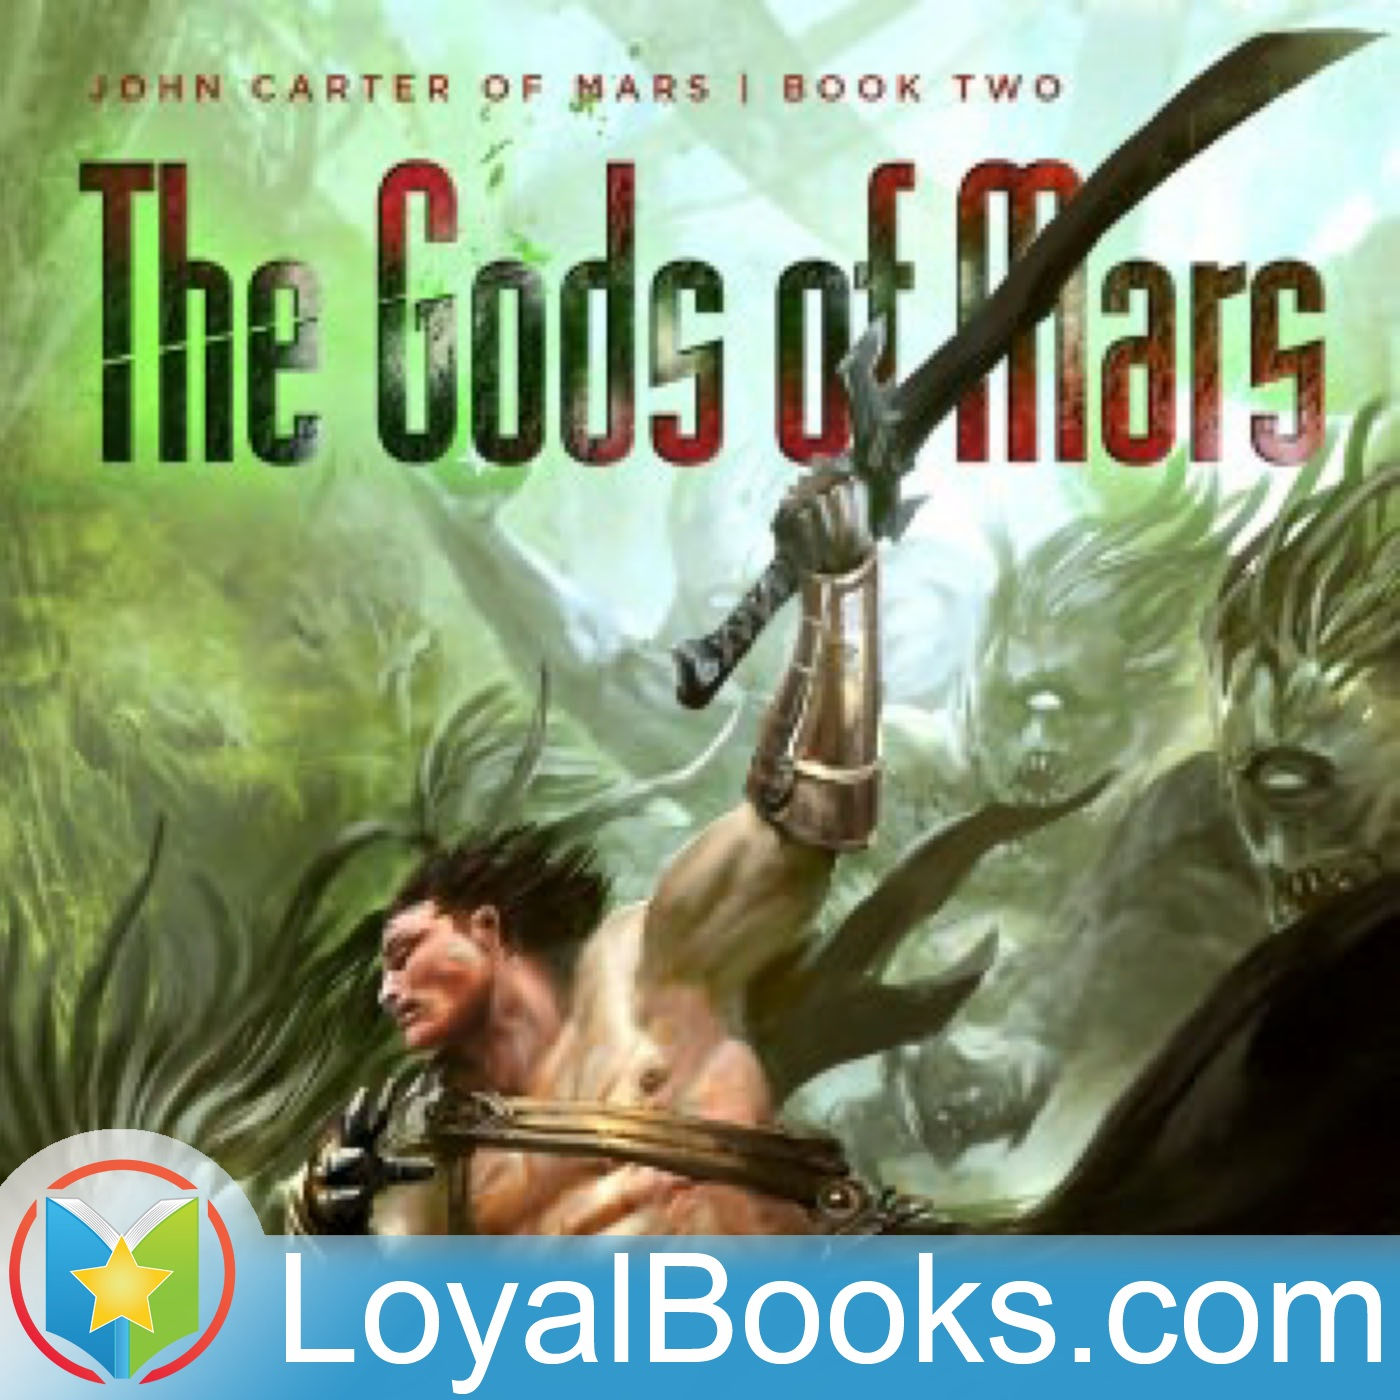 <![CDATA[The Gods of Mars by Edgar Rice Burroughs]]>